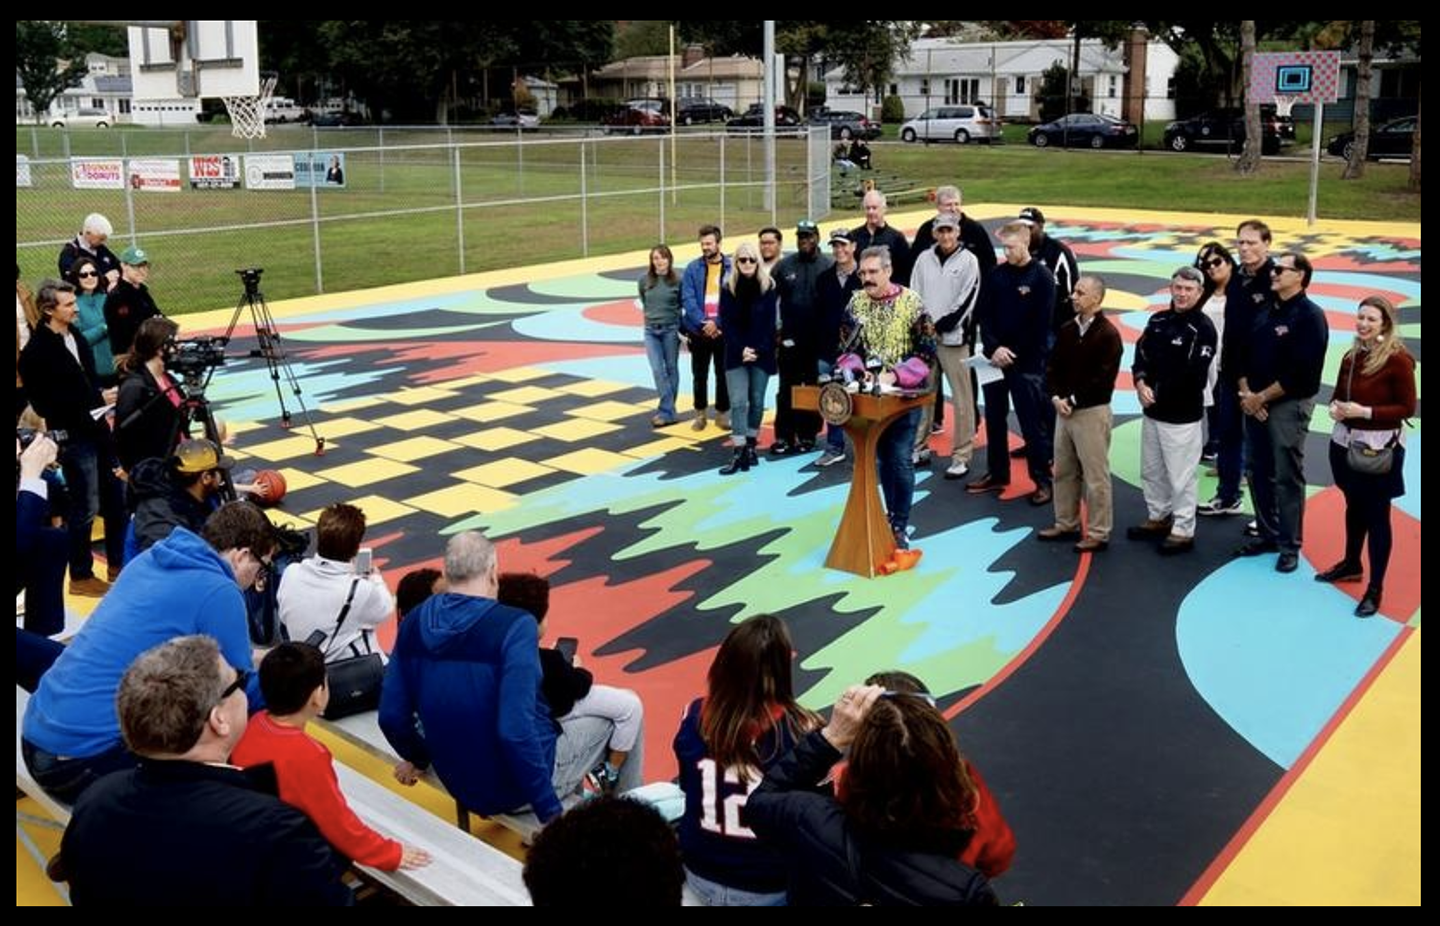 Artist Jim Drain addresses the crowd at the grand opening celebration and unveiling ceremony of My HomeCourt at Fargnoli Park in Providence. [Image Credit: The Providence Journal / Kris Craig]